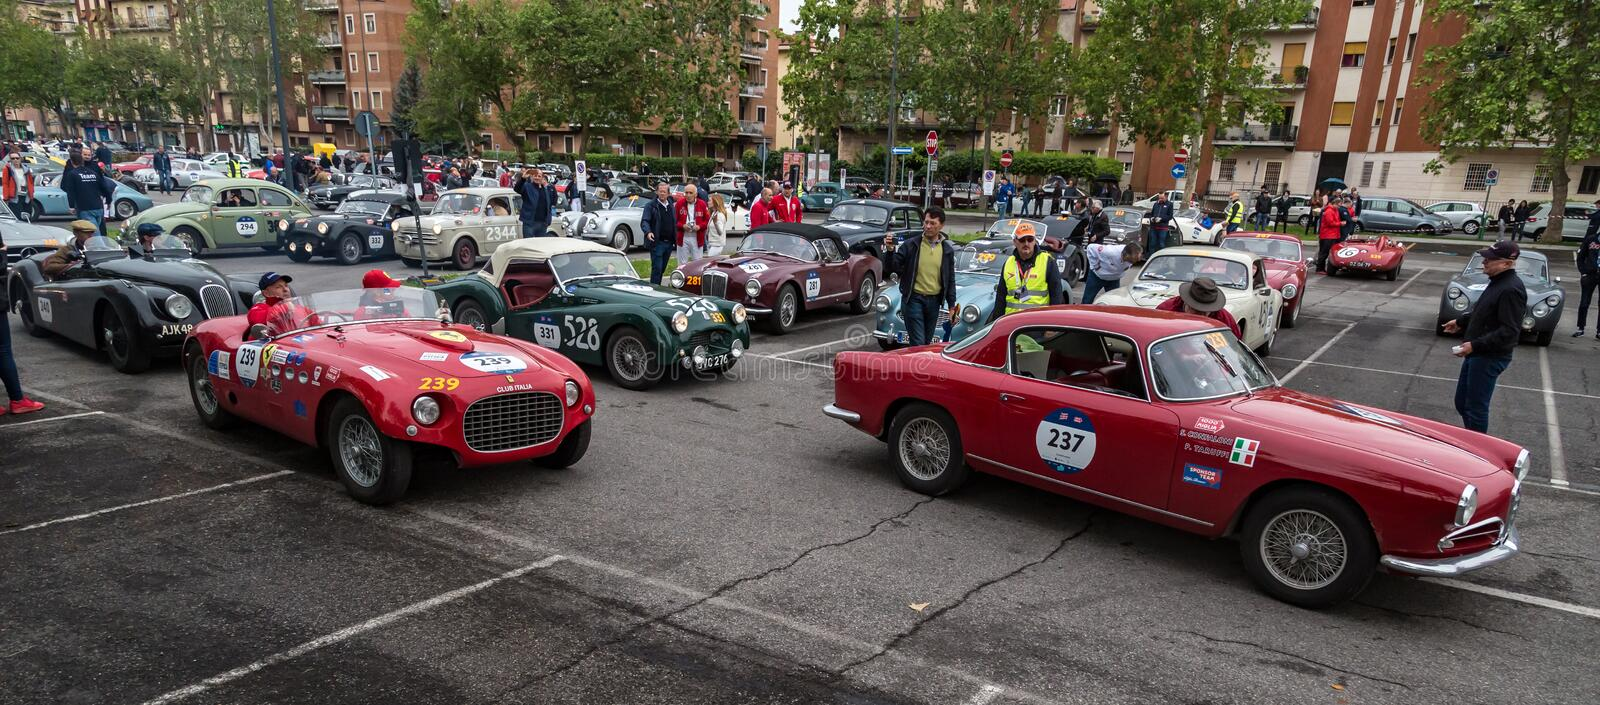 Public event of historical Parade of MilleMiglia a classic italian road race with vintage cars. Brescia, Italy - May 18, 2019: Triumphant entry of the classic royalty free stock image